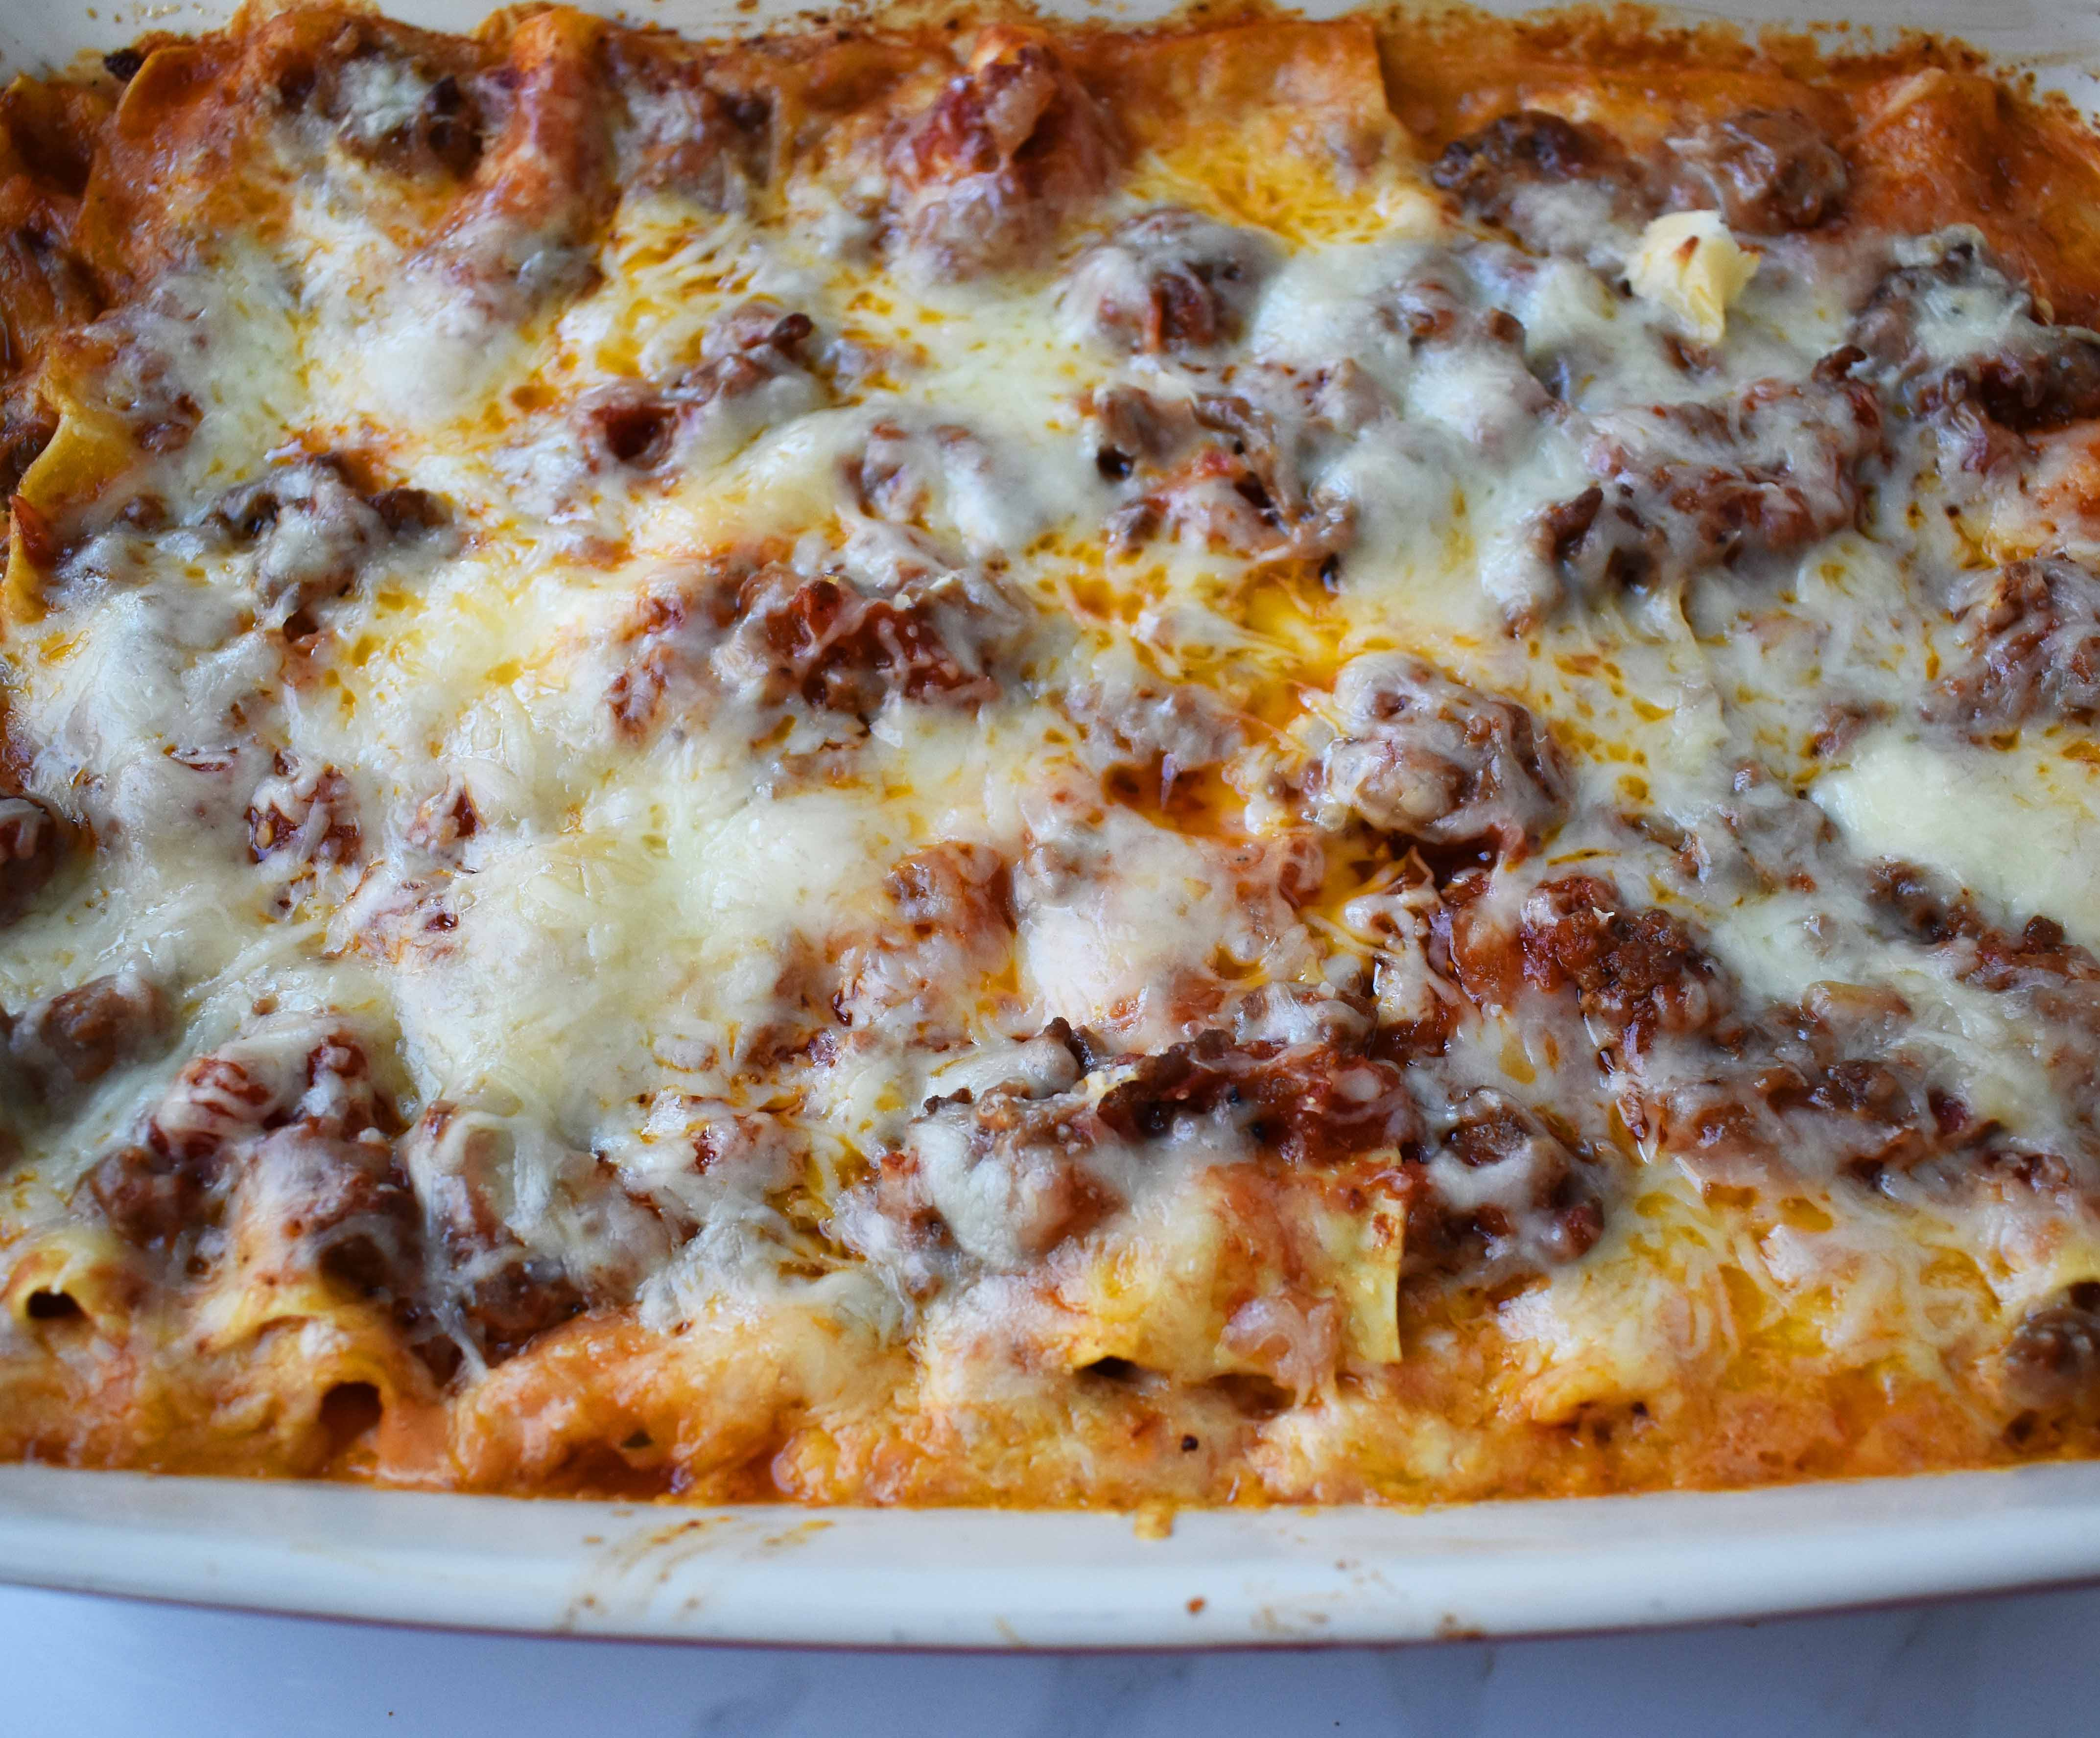 Italian Bolognese Lasagna. Authentic Italian recipe made with a traditional meat sauce, a creamy bechamel sauce, parmesan and mozzarella cheeses.